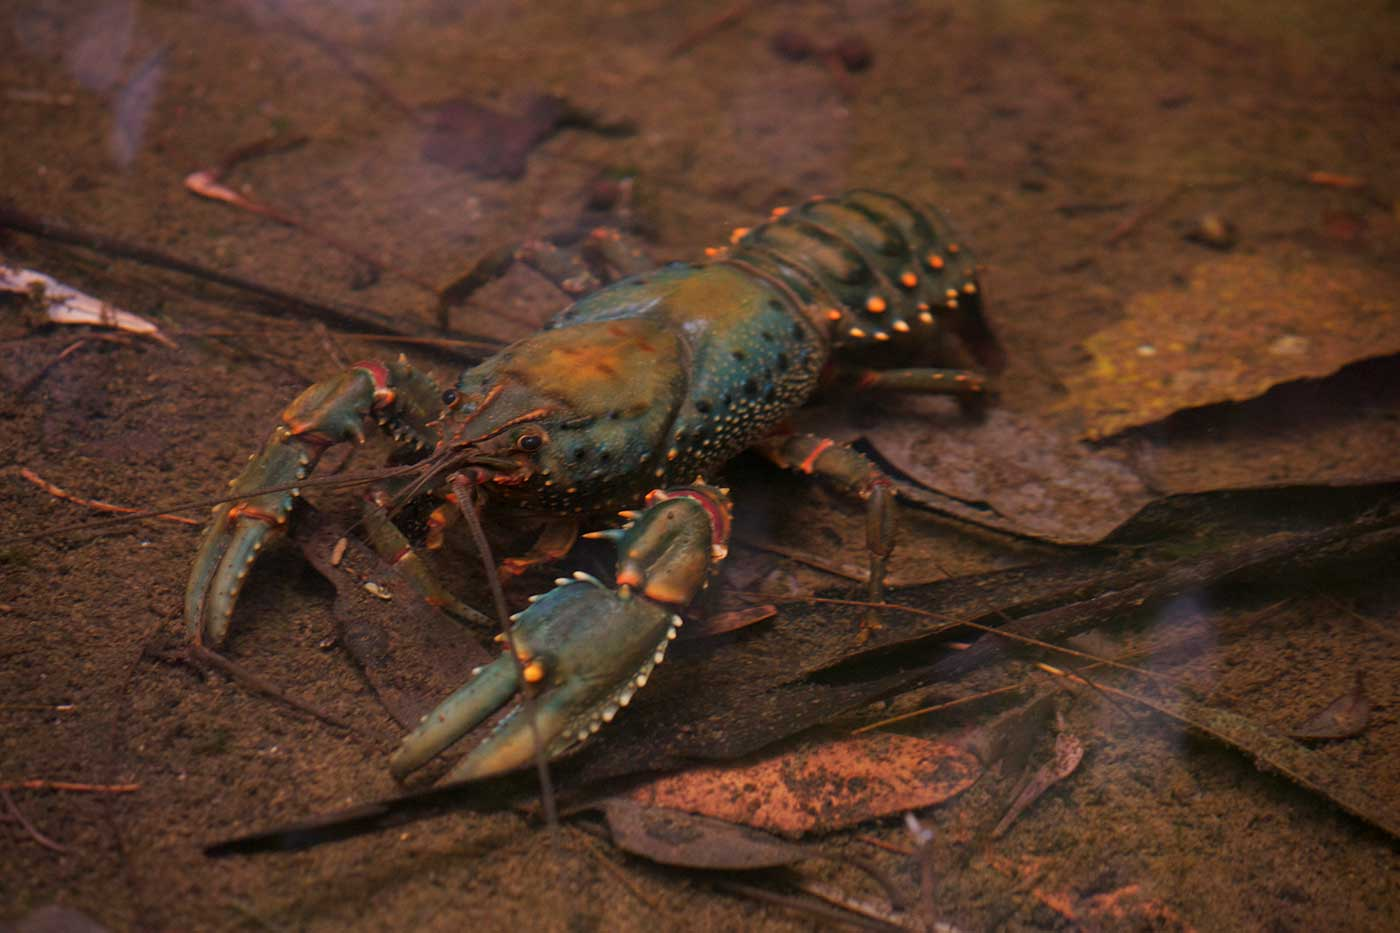 Colour photograph showing a crayfish with two large claws, in shallow water.  - click to view larger image